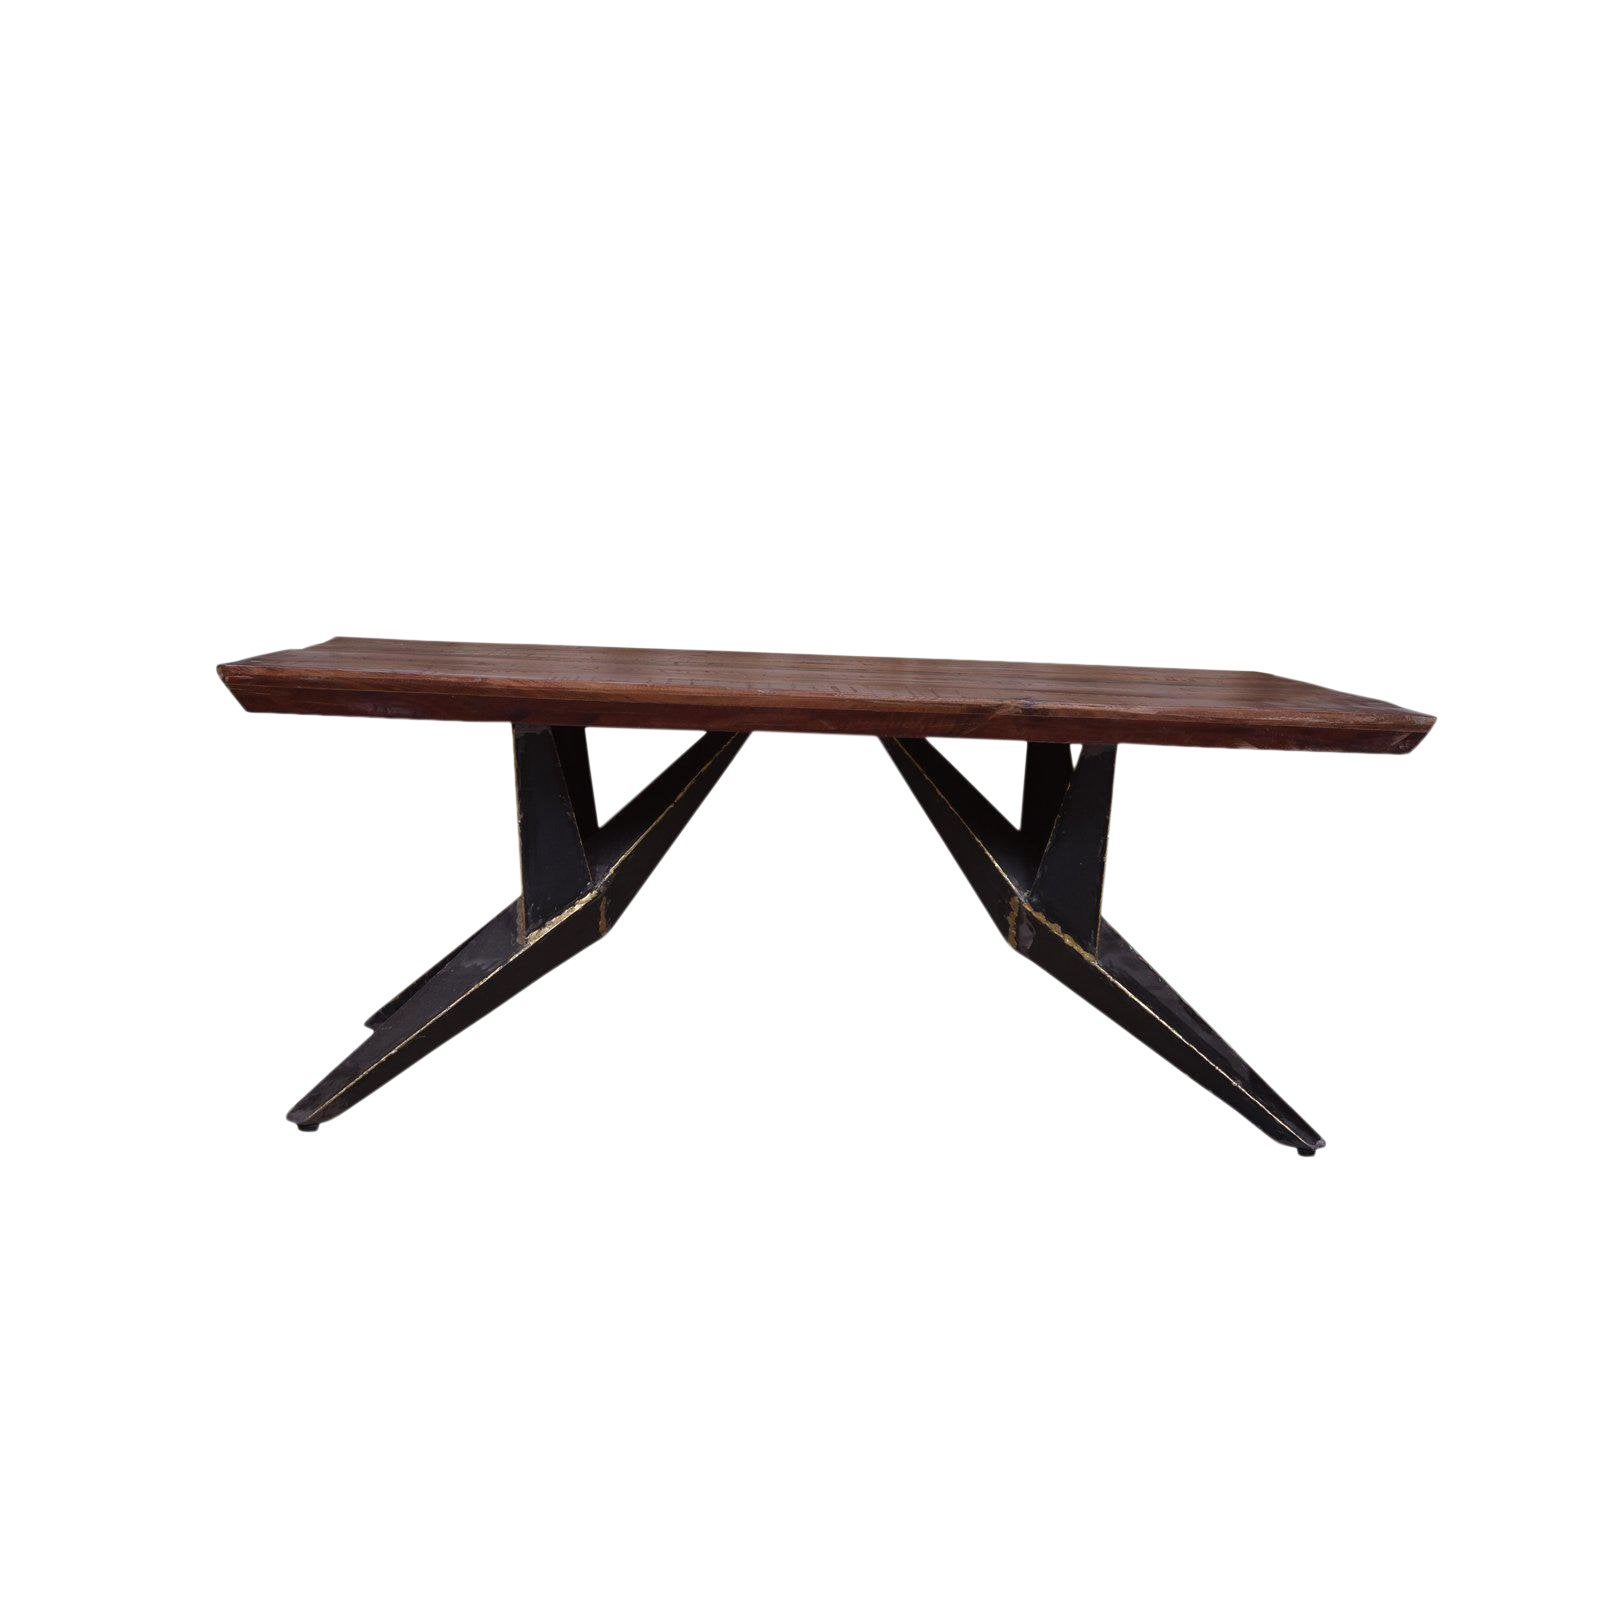 Faunia wooden console table hallway or entryway sofa console for living room wood and metal home furniture wood top natural chairish